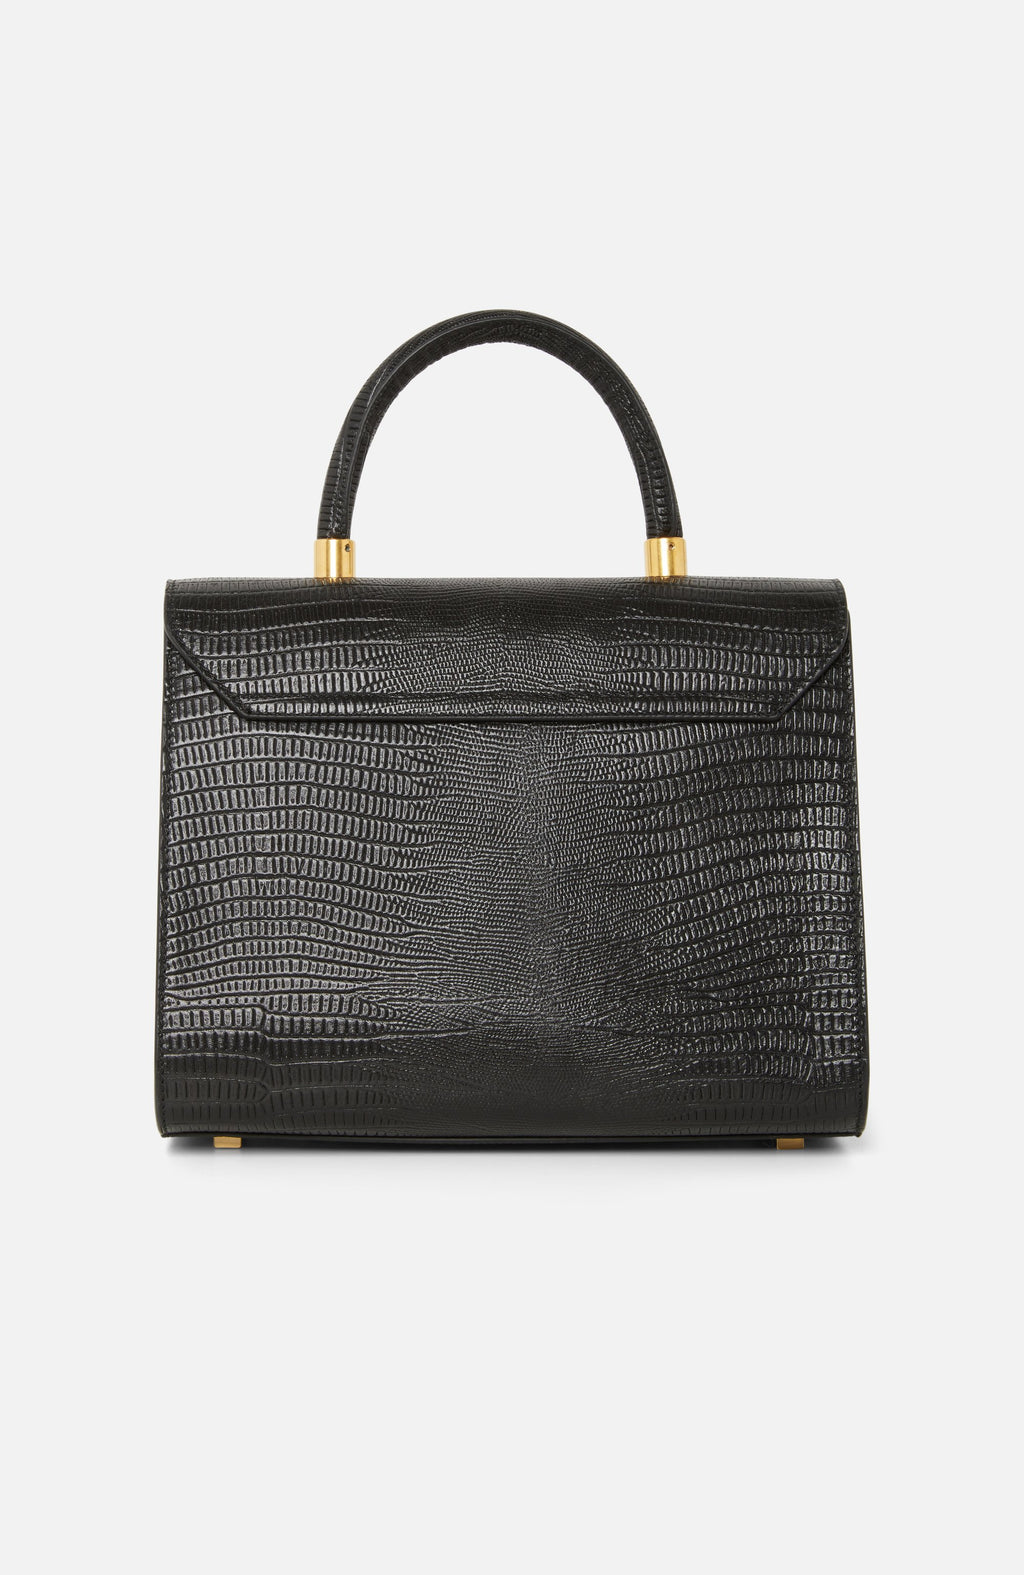 Visone Angie Black Printed Leather Mini Bag